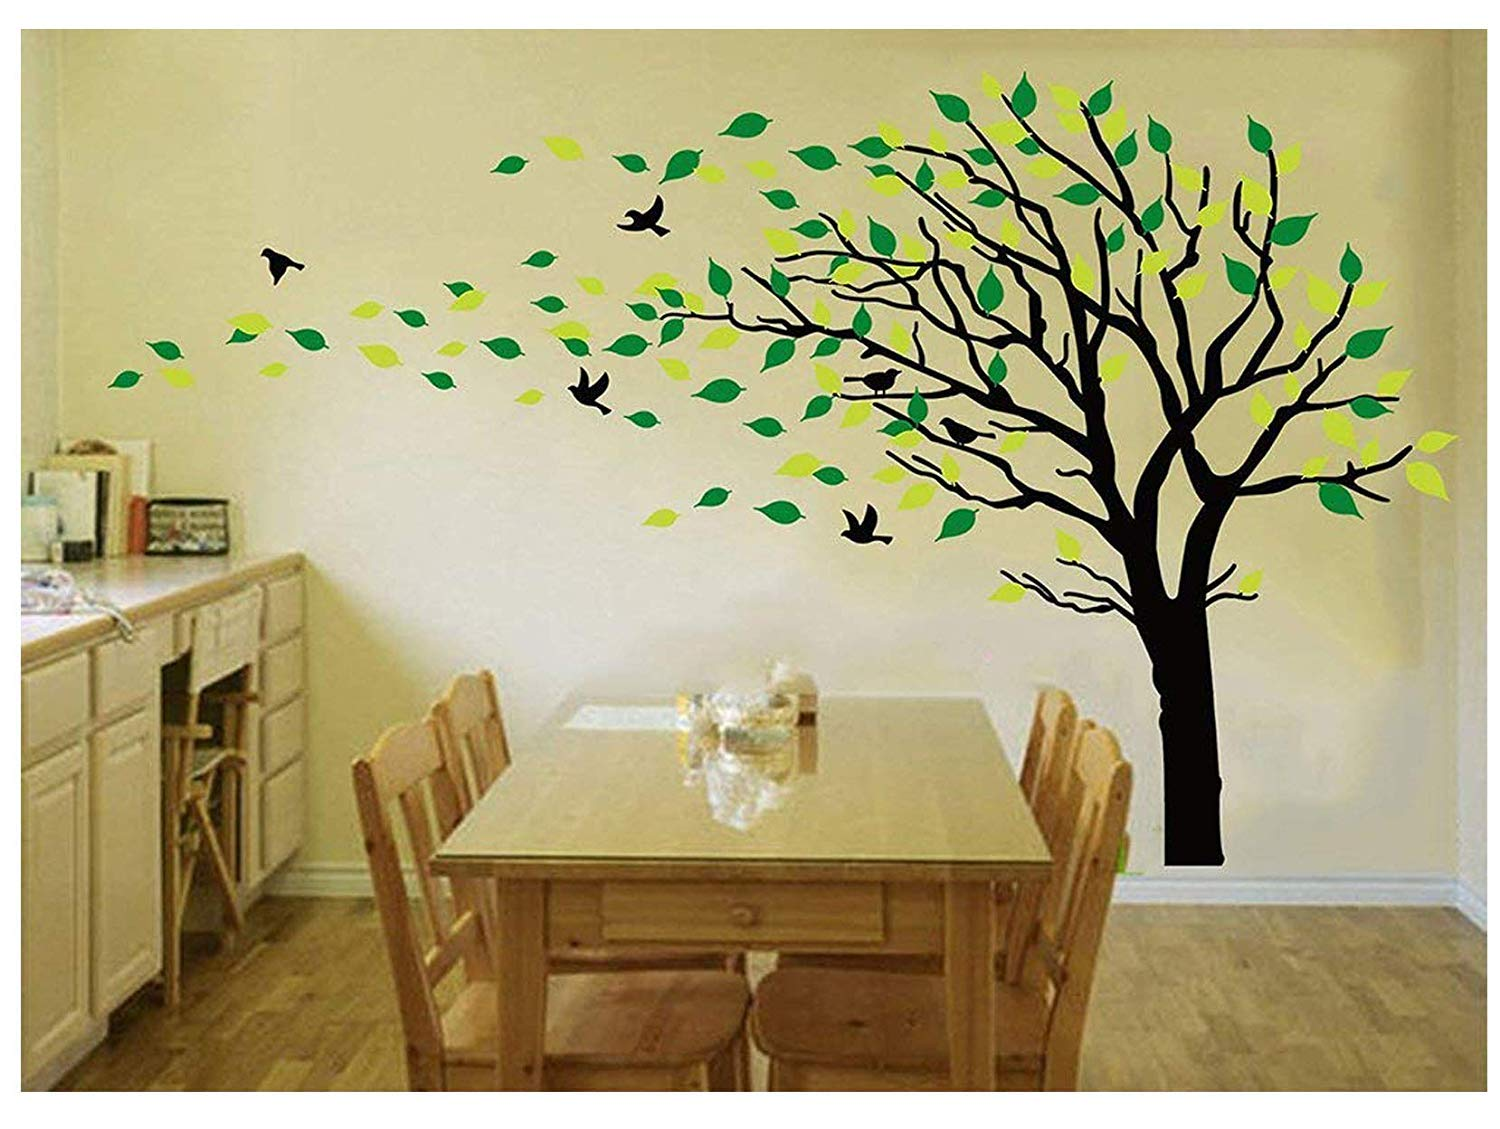 Amazon.com: LUCKKYY Tree Blowing in The Wind Tree Wall Decals Wall ...